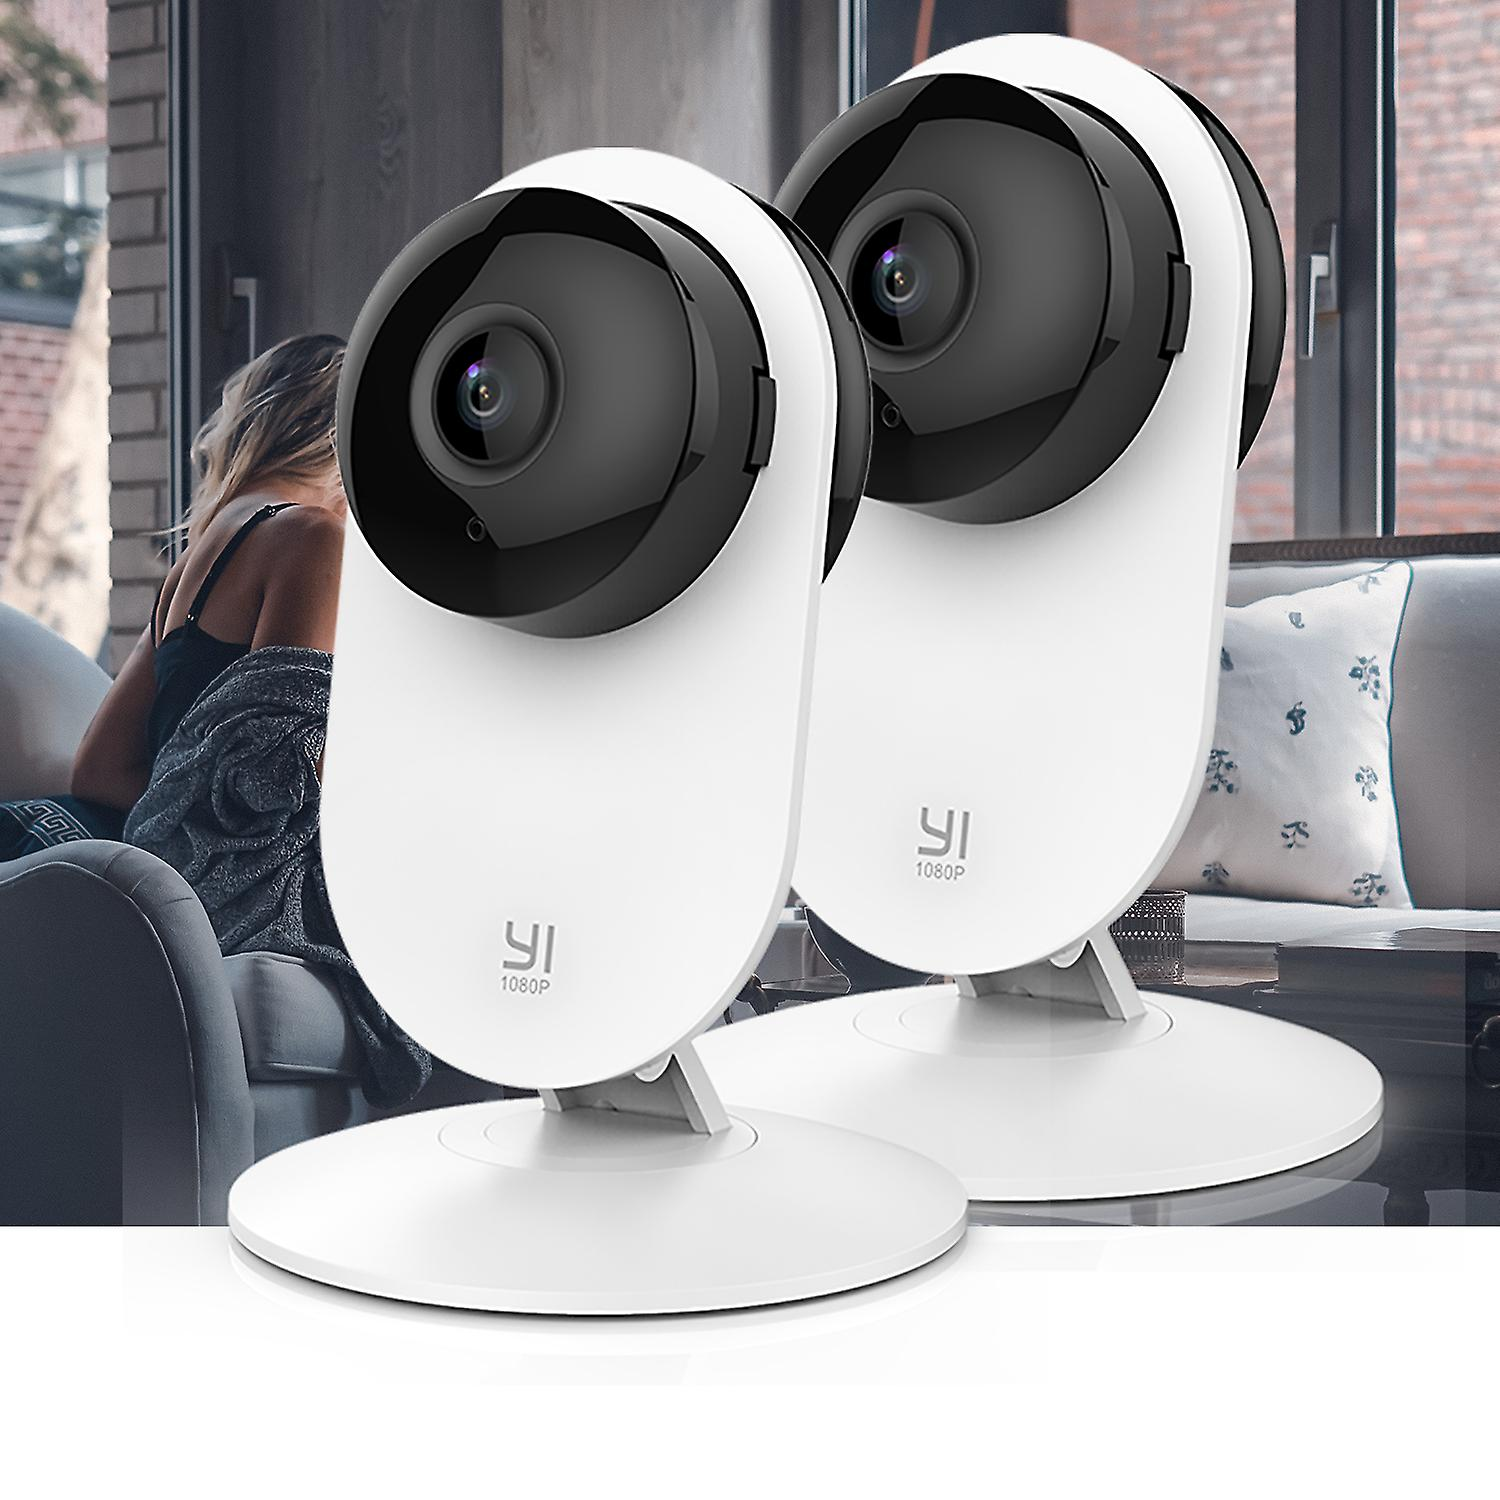 YI Home Camera 1080p-Family Pack 2 in 1